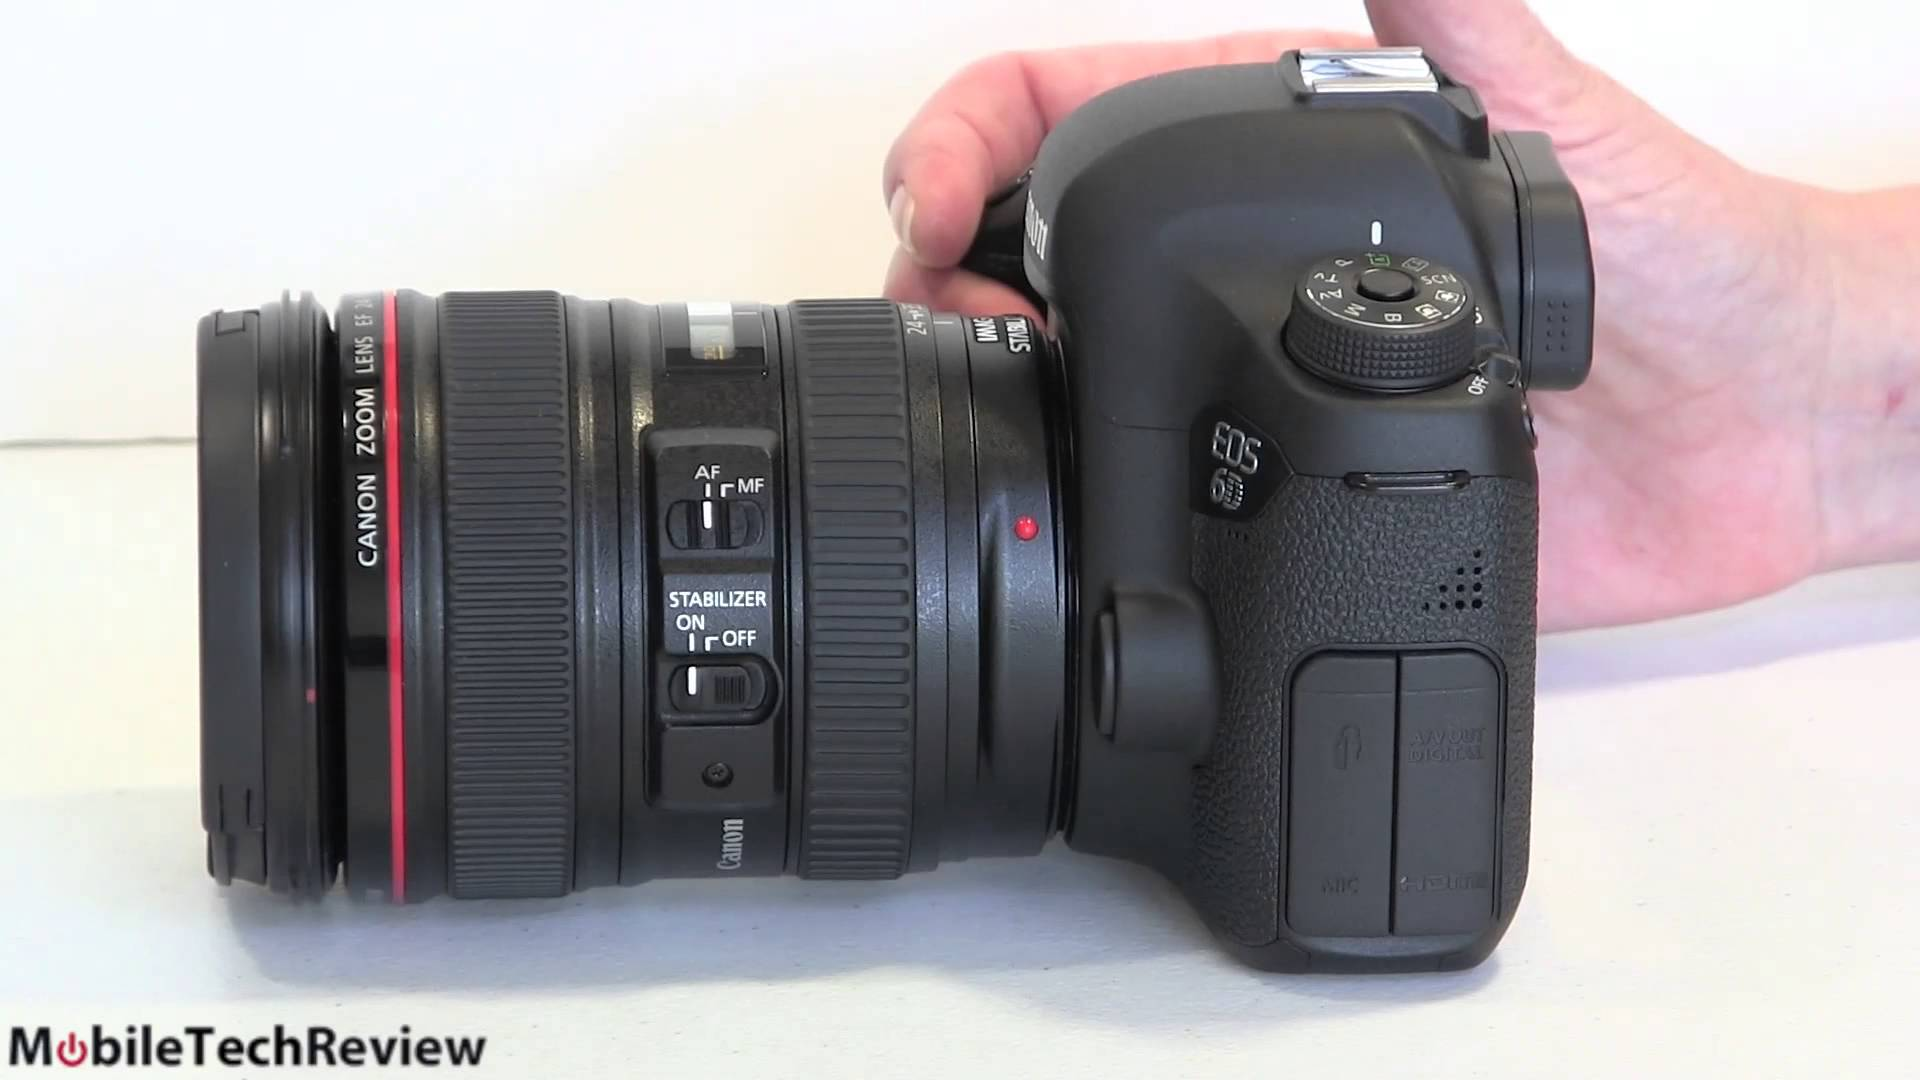 Lisa Gade reviews the Canon EOS 6D full frame DSLR camera with Canon ...